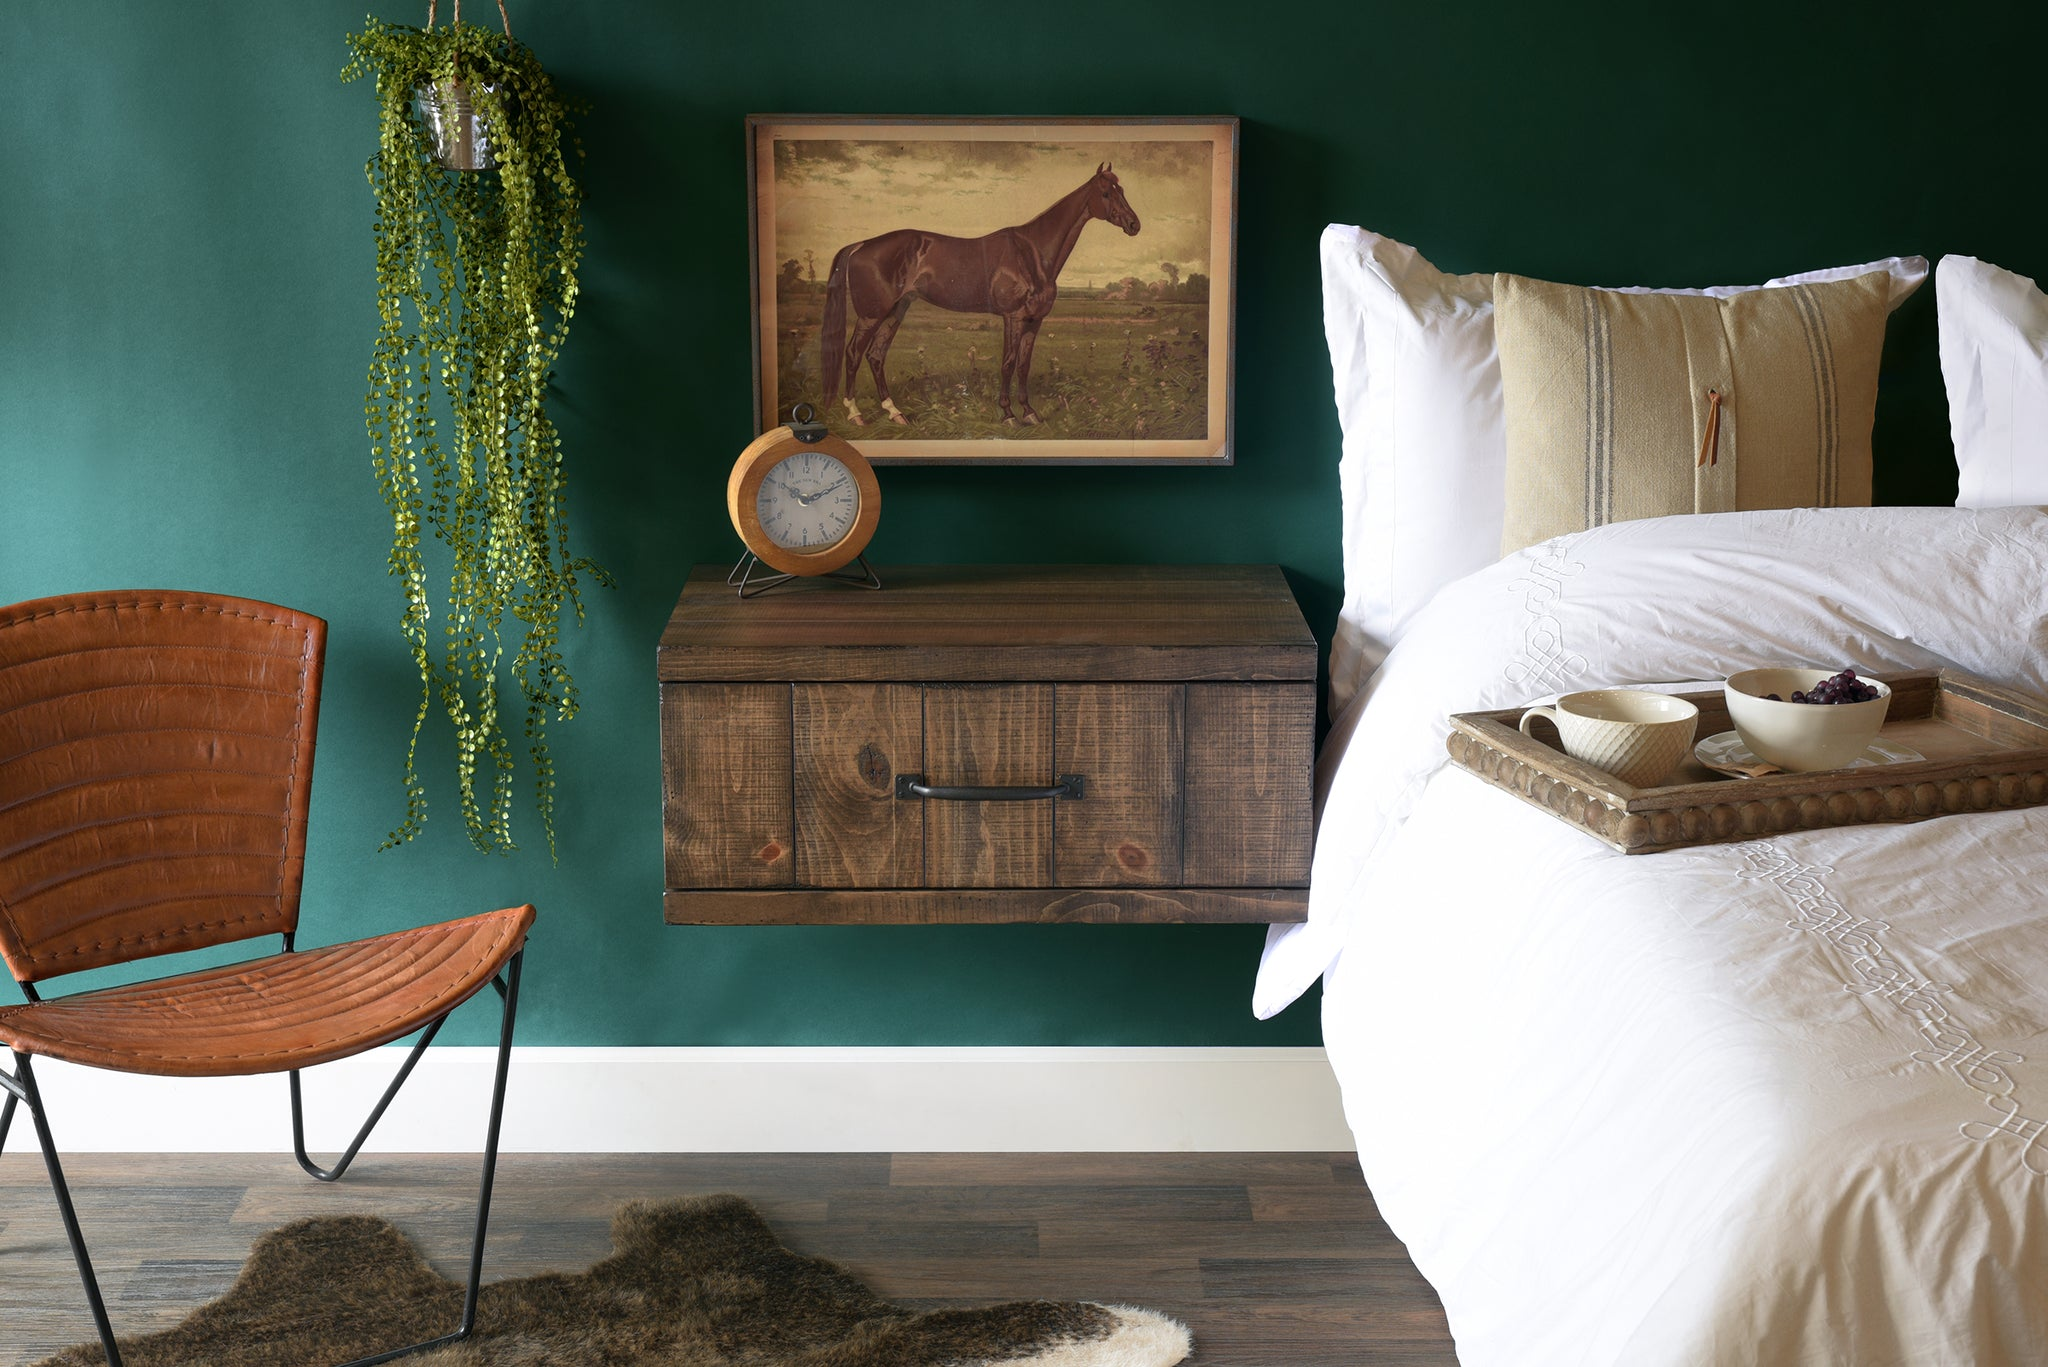 Rustic Floating Wall Mount Nightstand Drawer Reclaimed Barn Wood Style Green Wall Farmhouse Spice Woodwaves 2048x